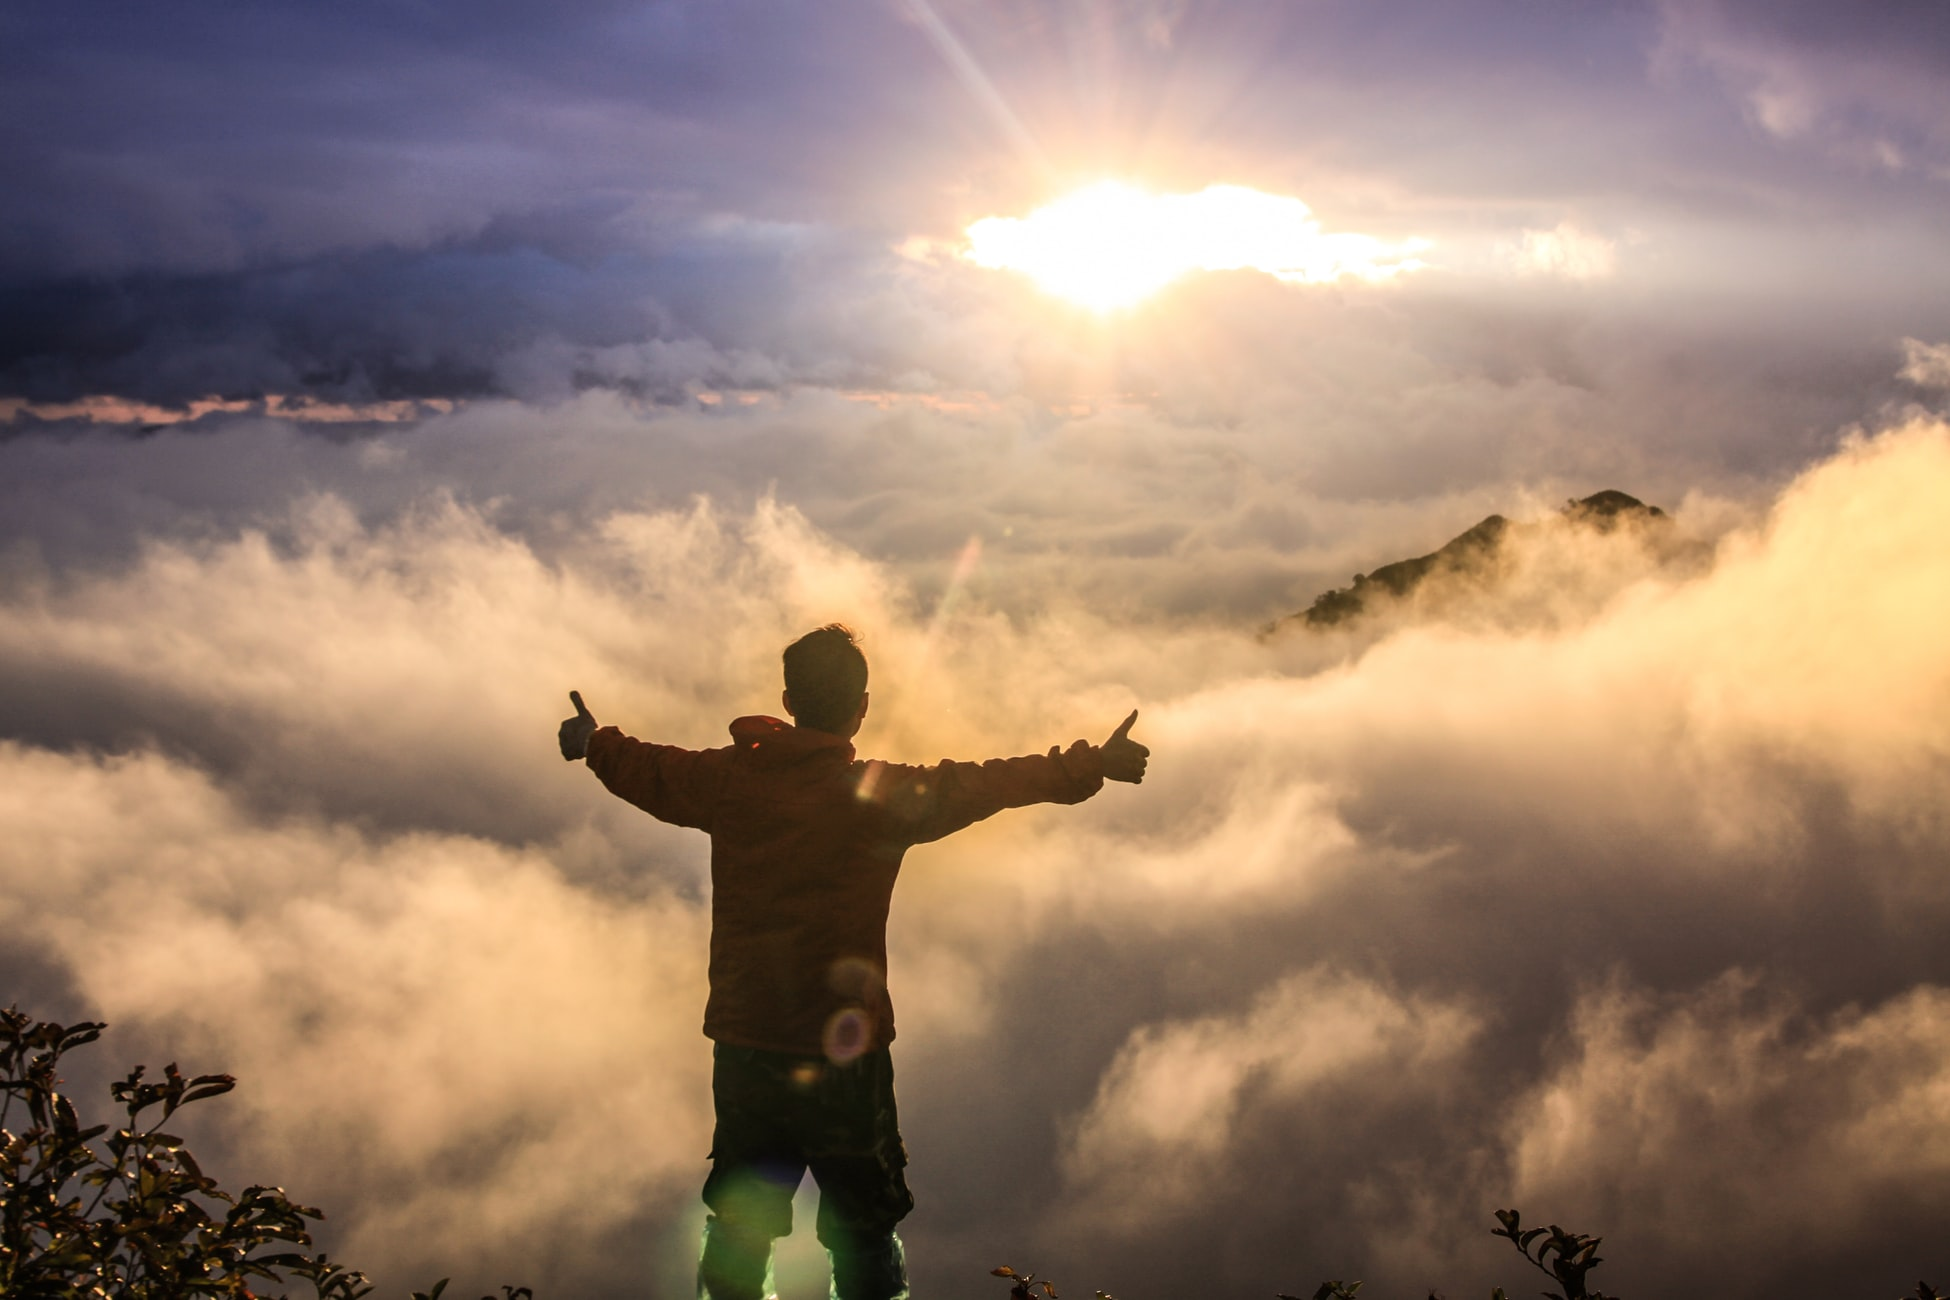 Man standing on a mountain giving two thumbs up